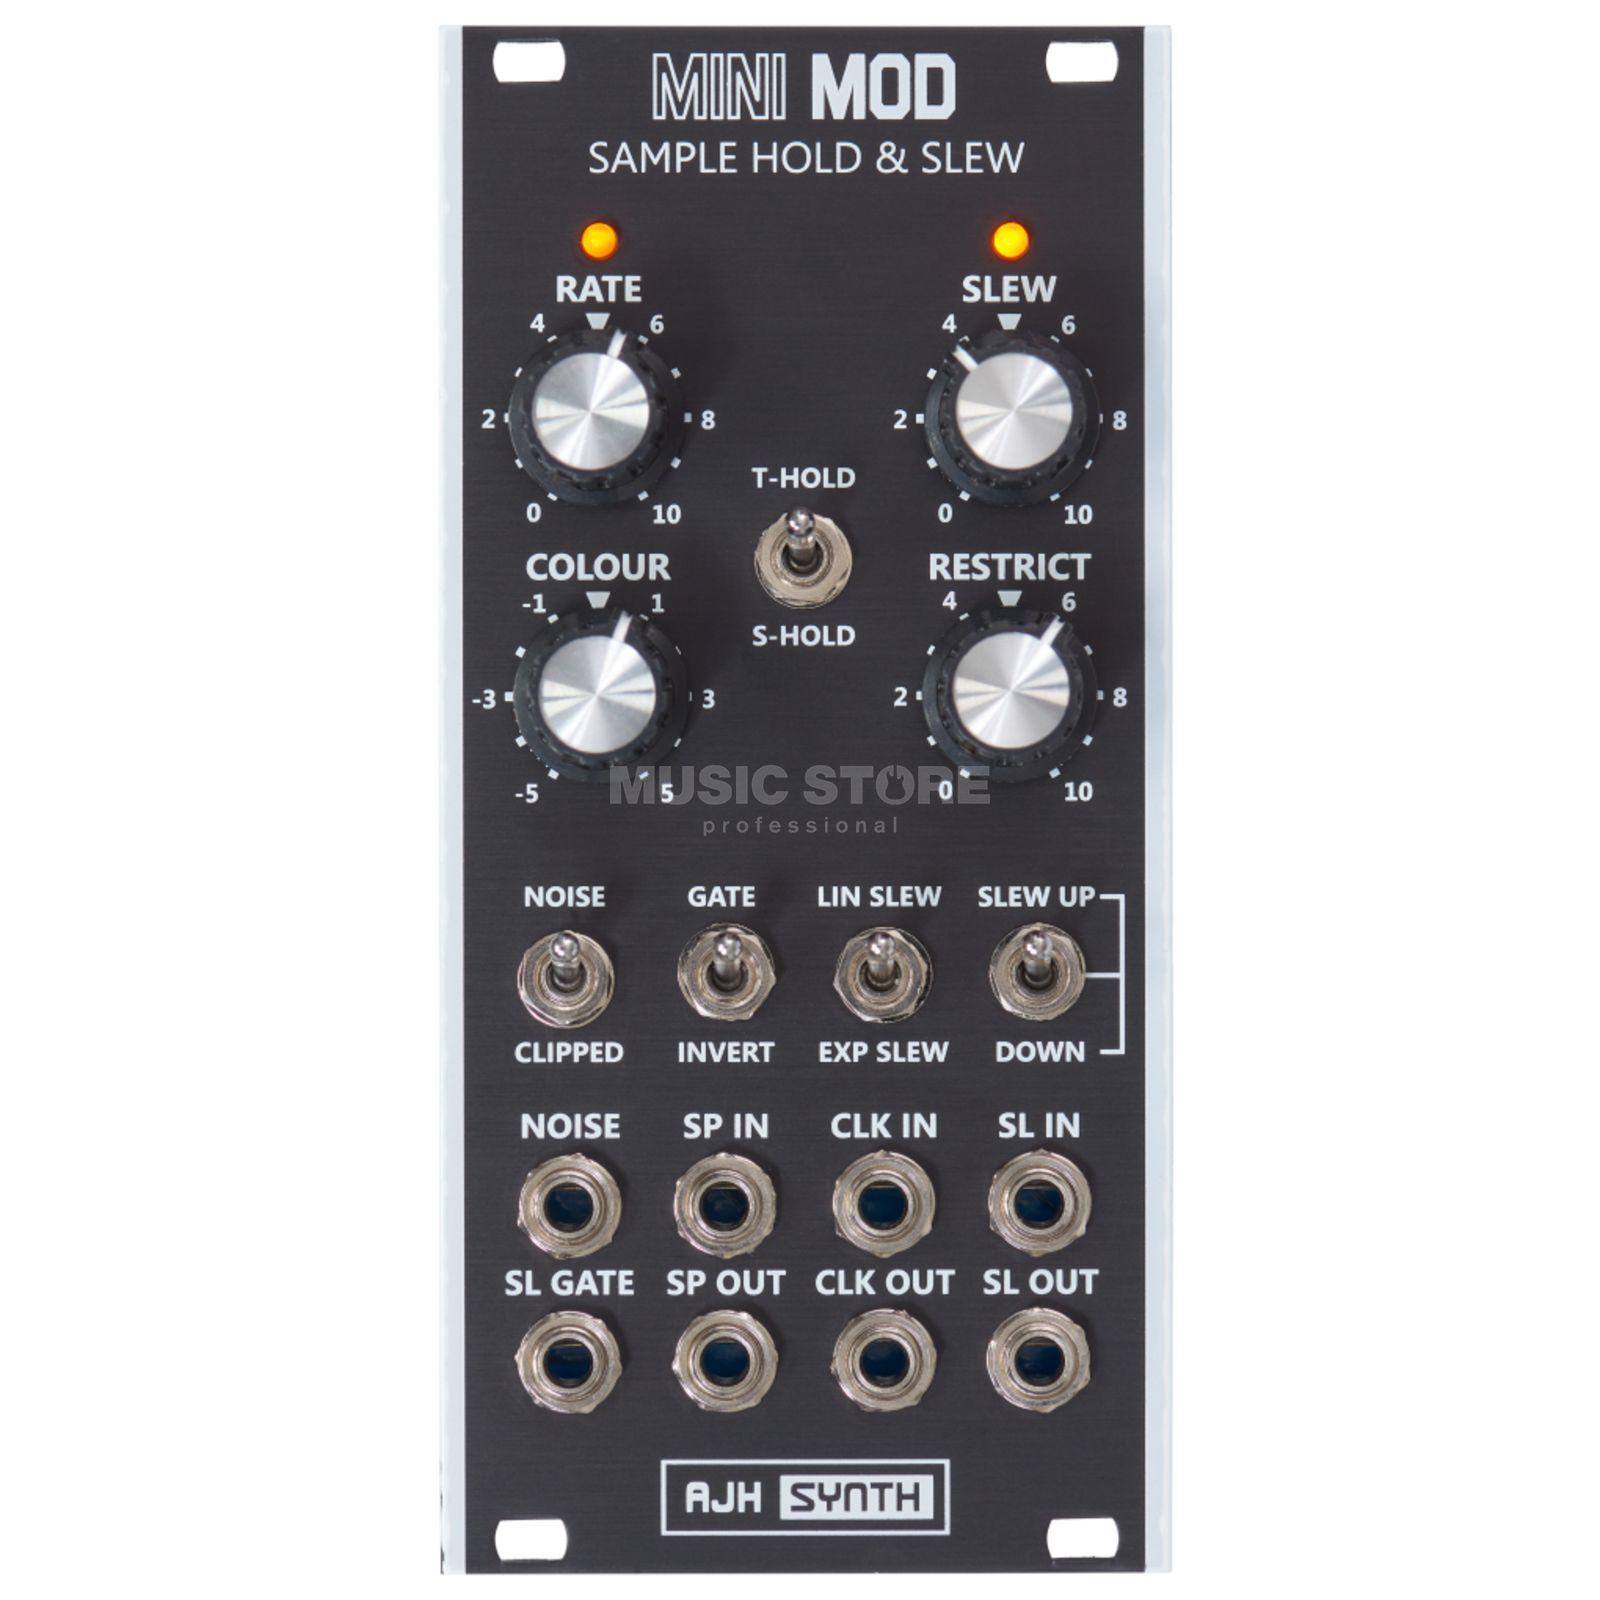 AJH Synth MiniMod Sample Hold & Slew Product Image